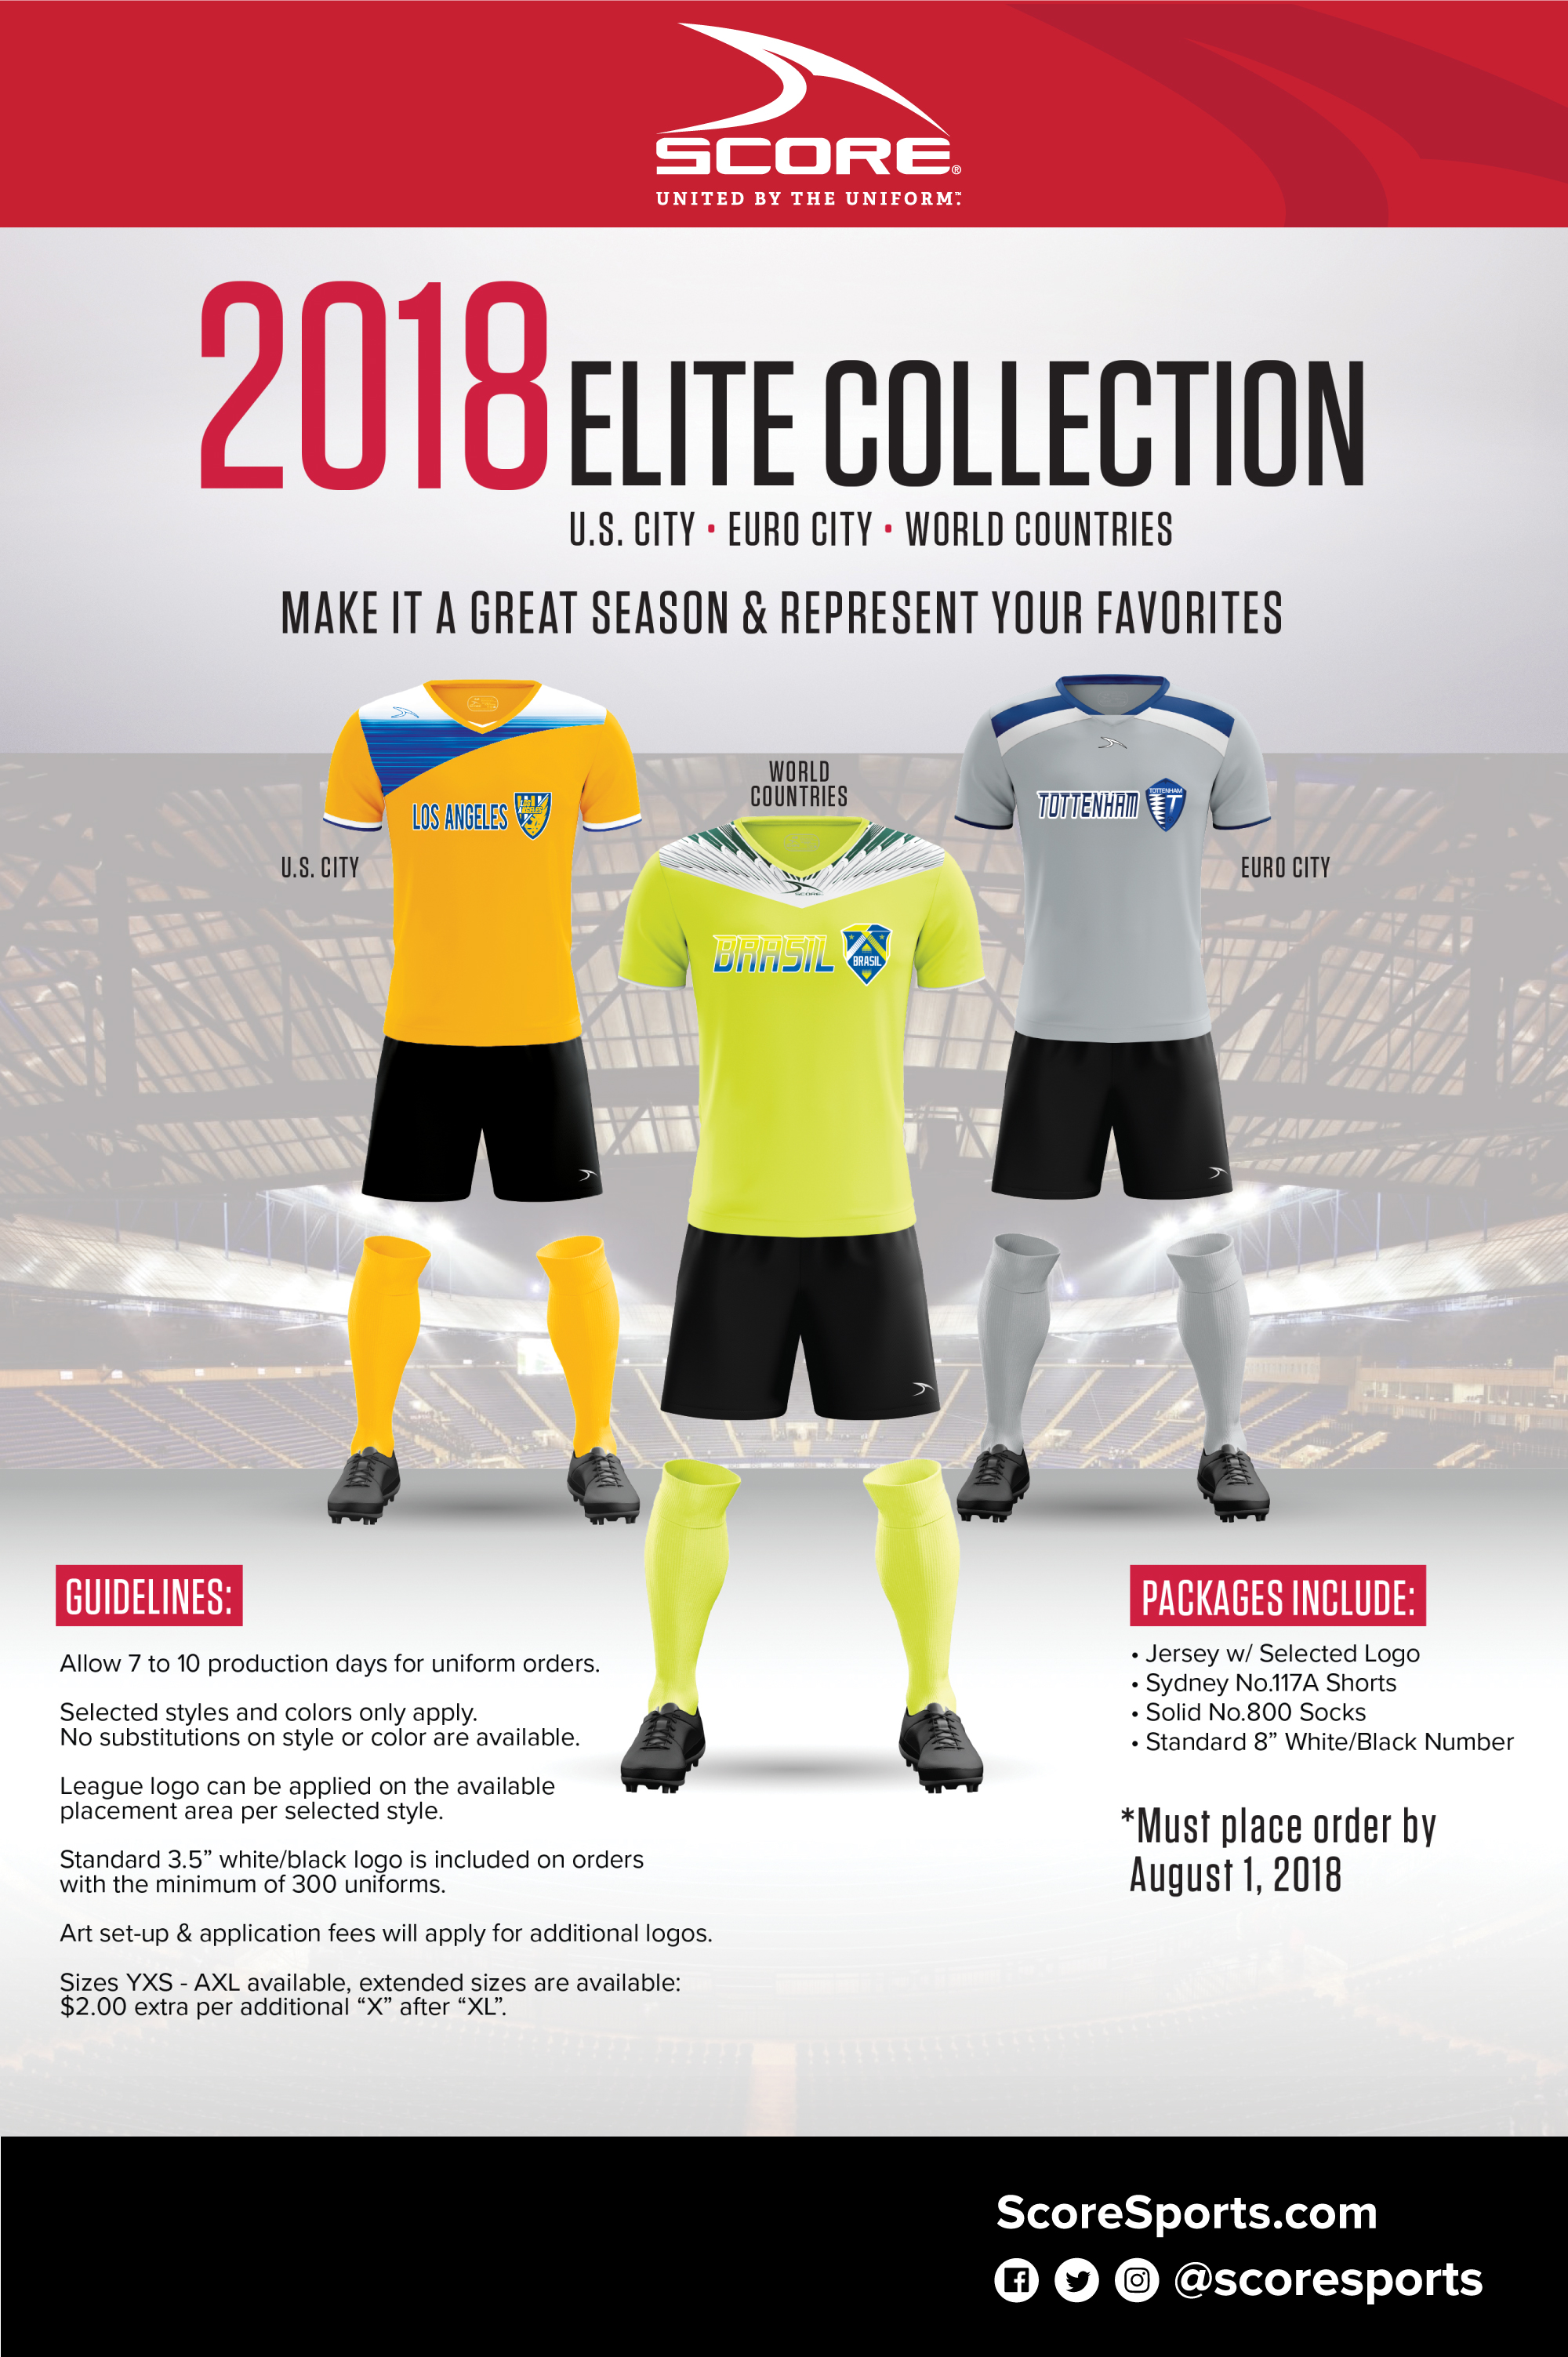 2018 Elite Collection